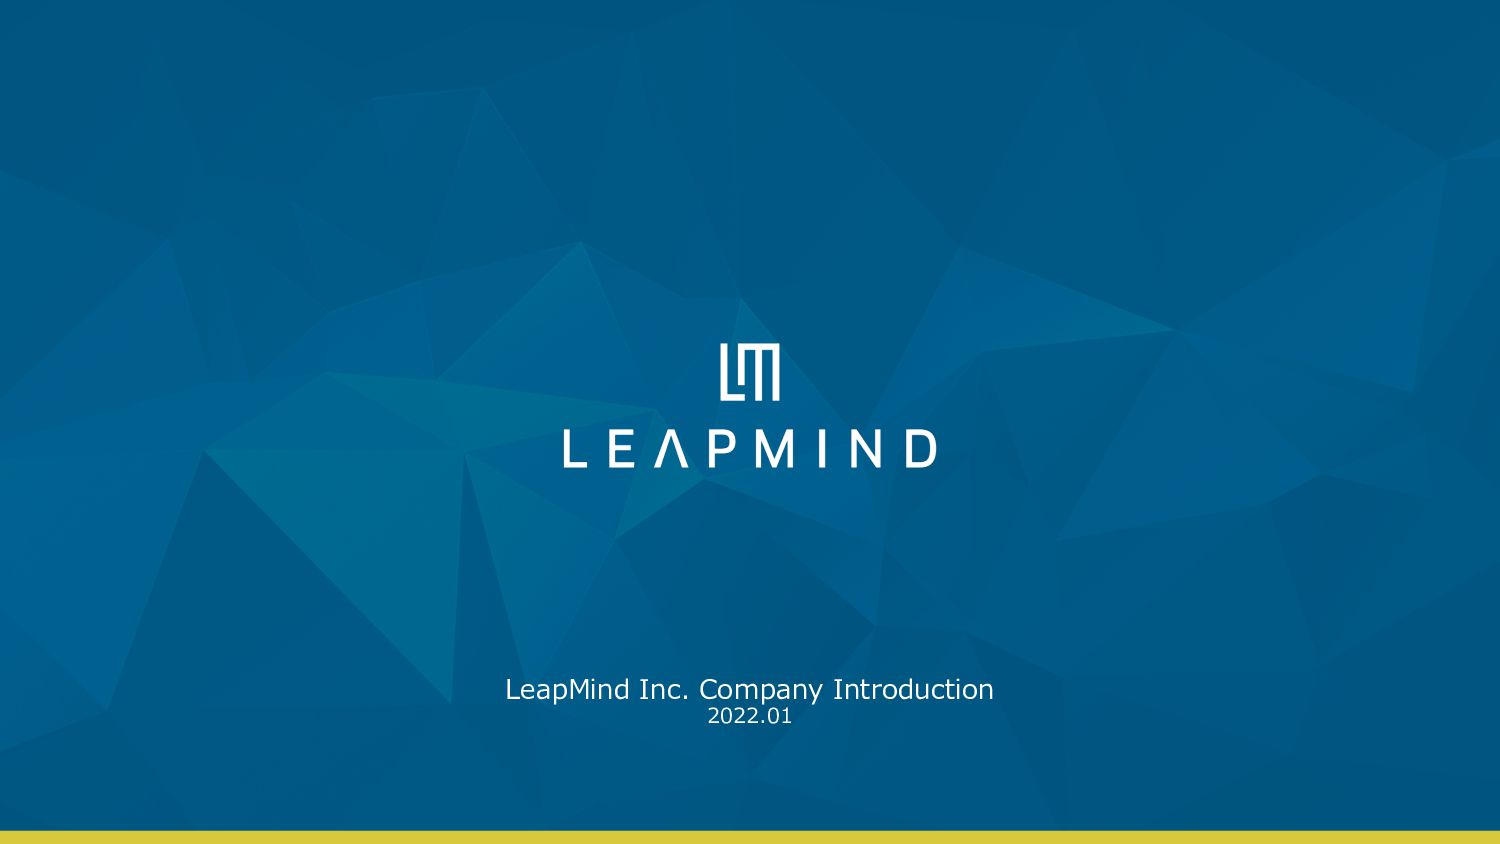 LeapMind Inc. Company Introduction 2021.7